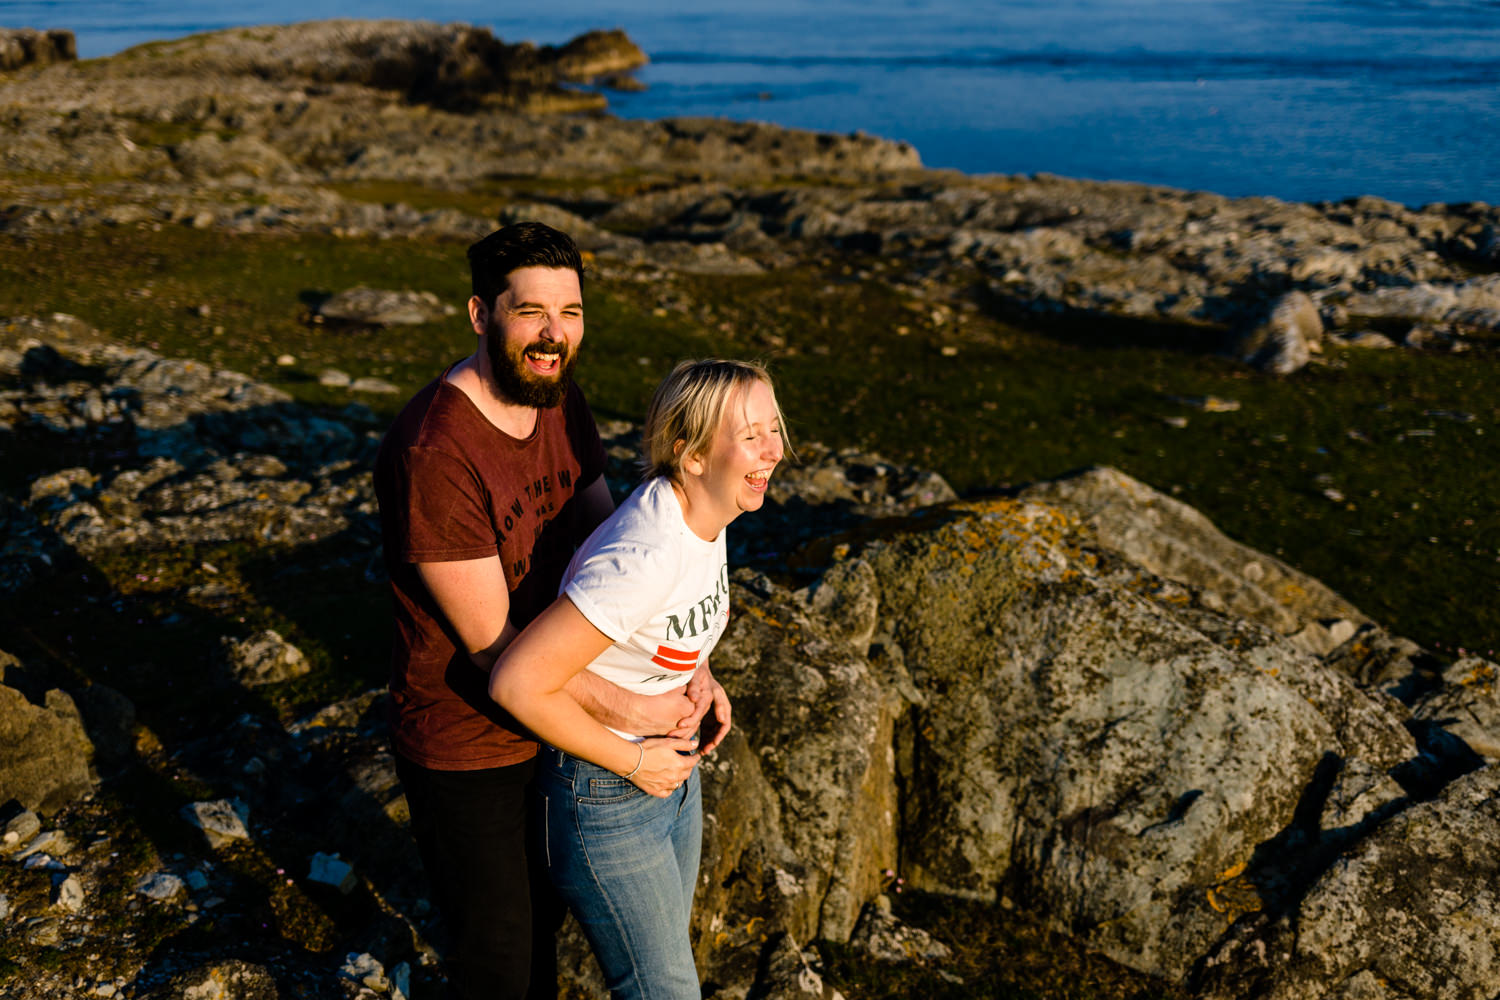 A couple laugh together lit by the golden hour sun on the headland in Anglesey.